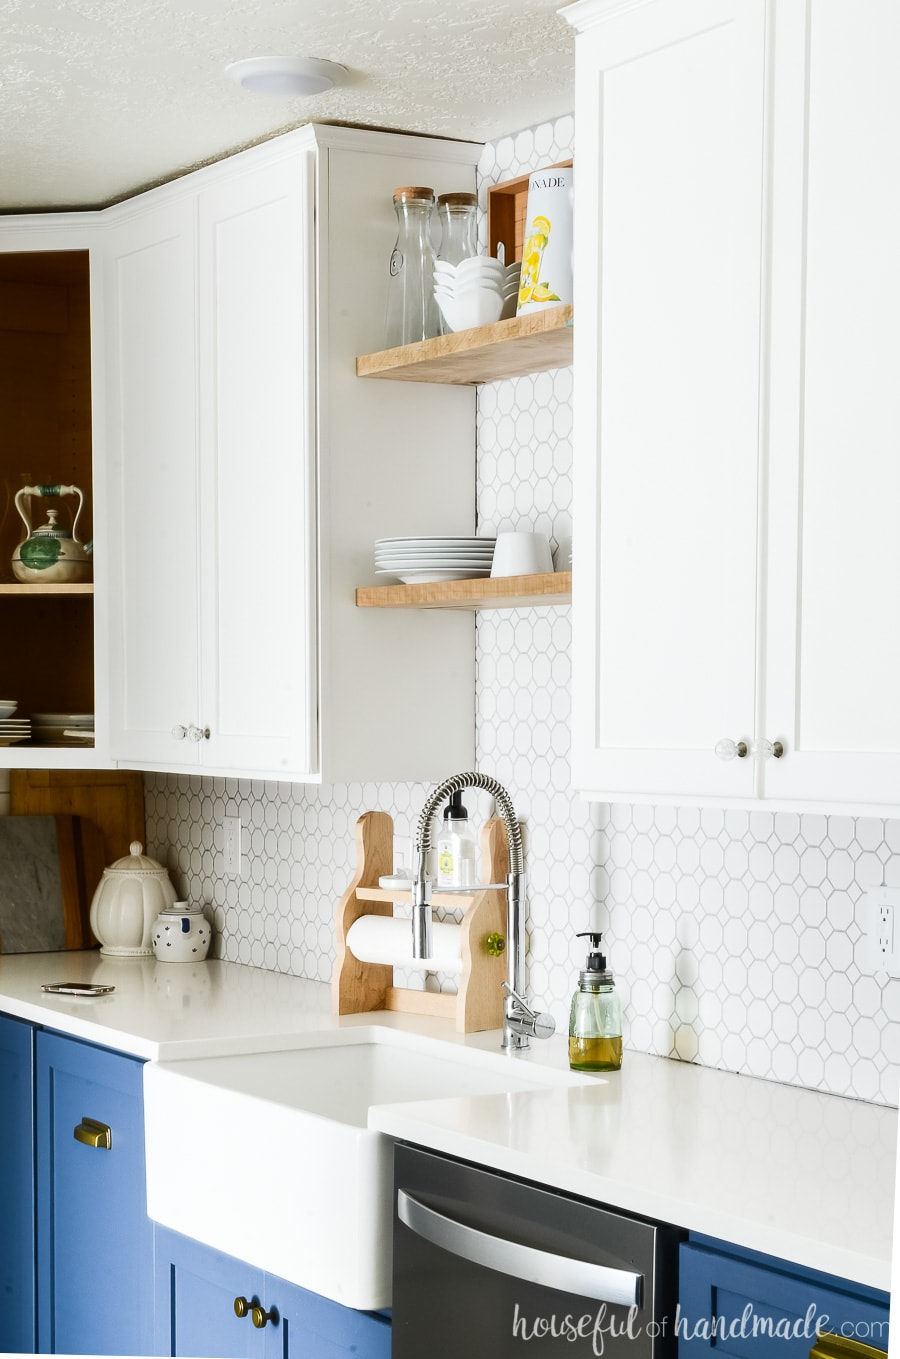 How To Get Stains Out Of White Kitchen Sink